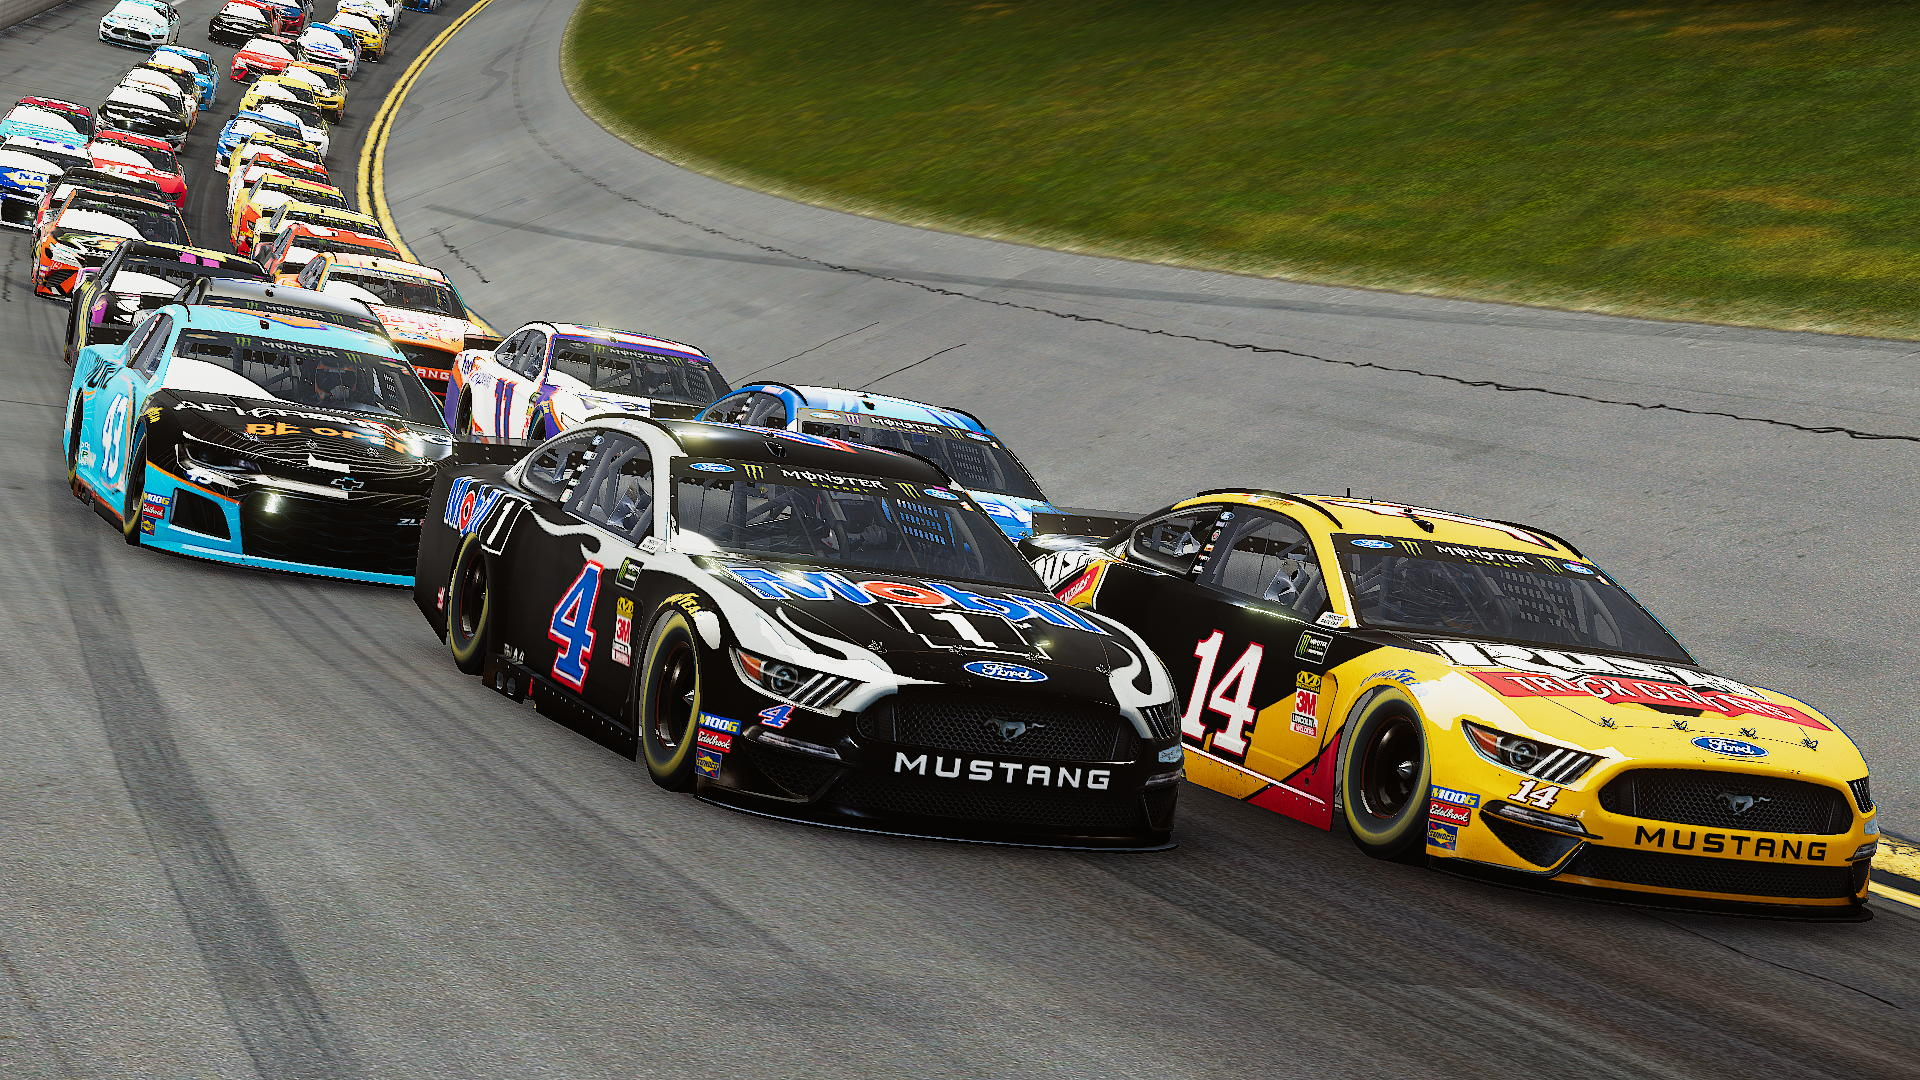 Kevin Harvick and Clint Bowyer leading the pack in NASCAR Heat 4